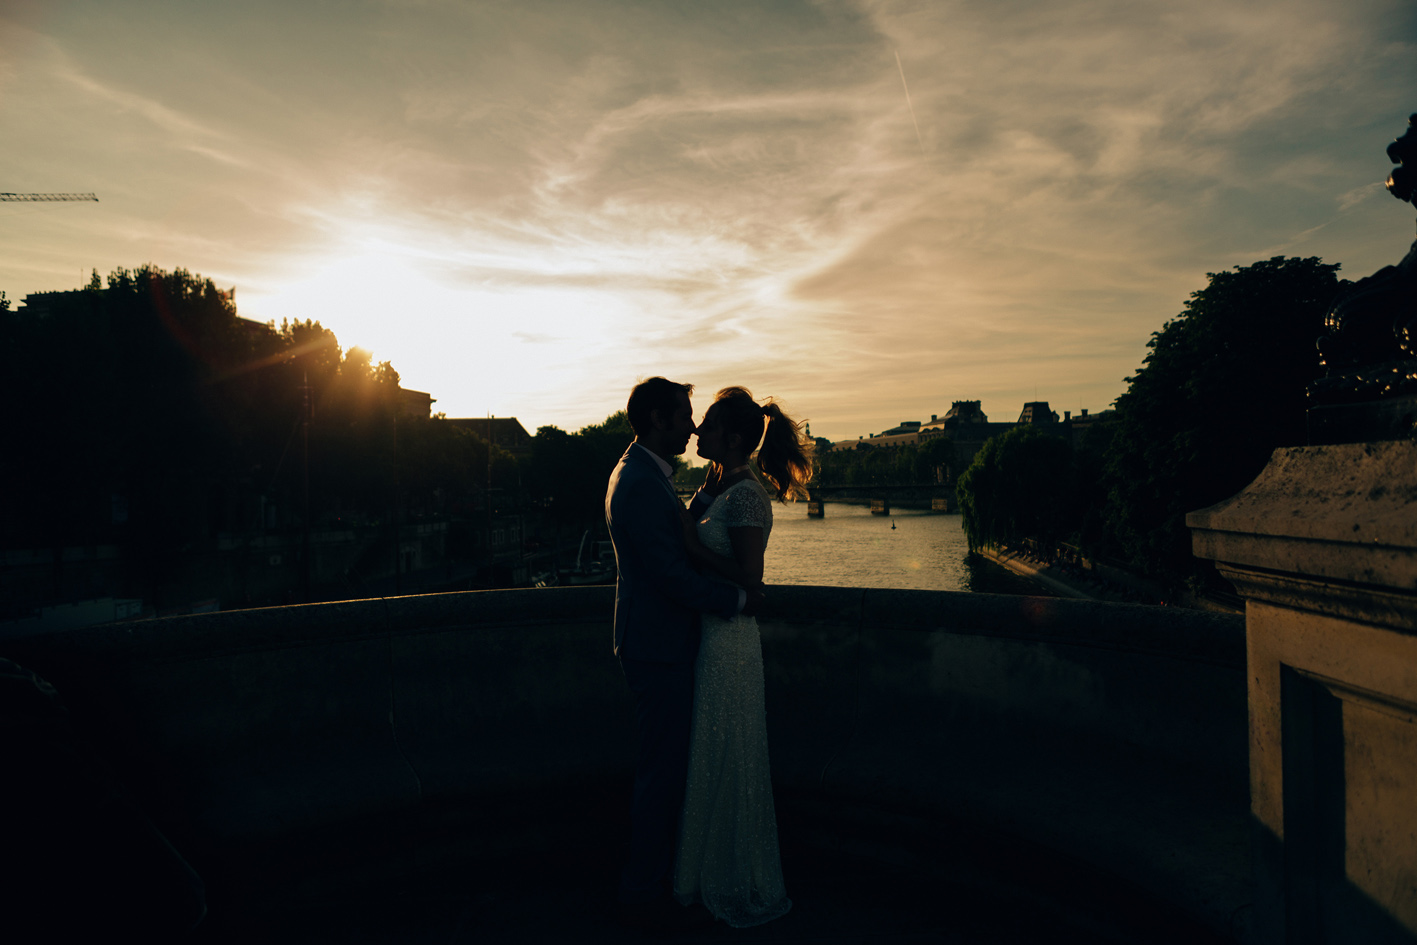 Pierre Atelier / photographe mariage / Paris / wedding planner / Paris photographer wedding / mairie du 16 eme / chalet des iles